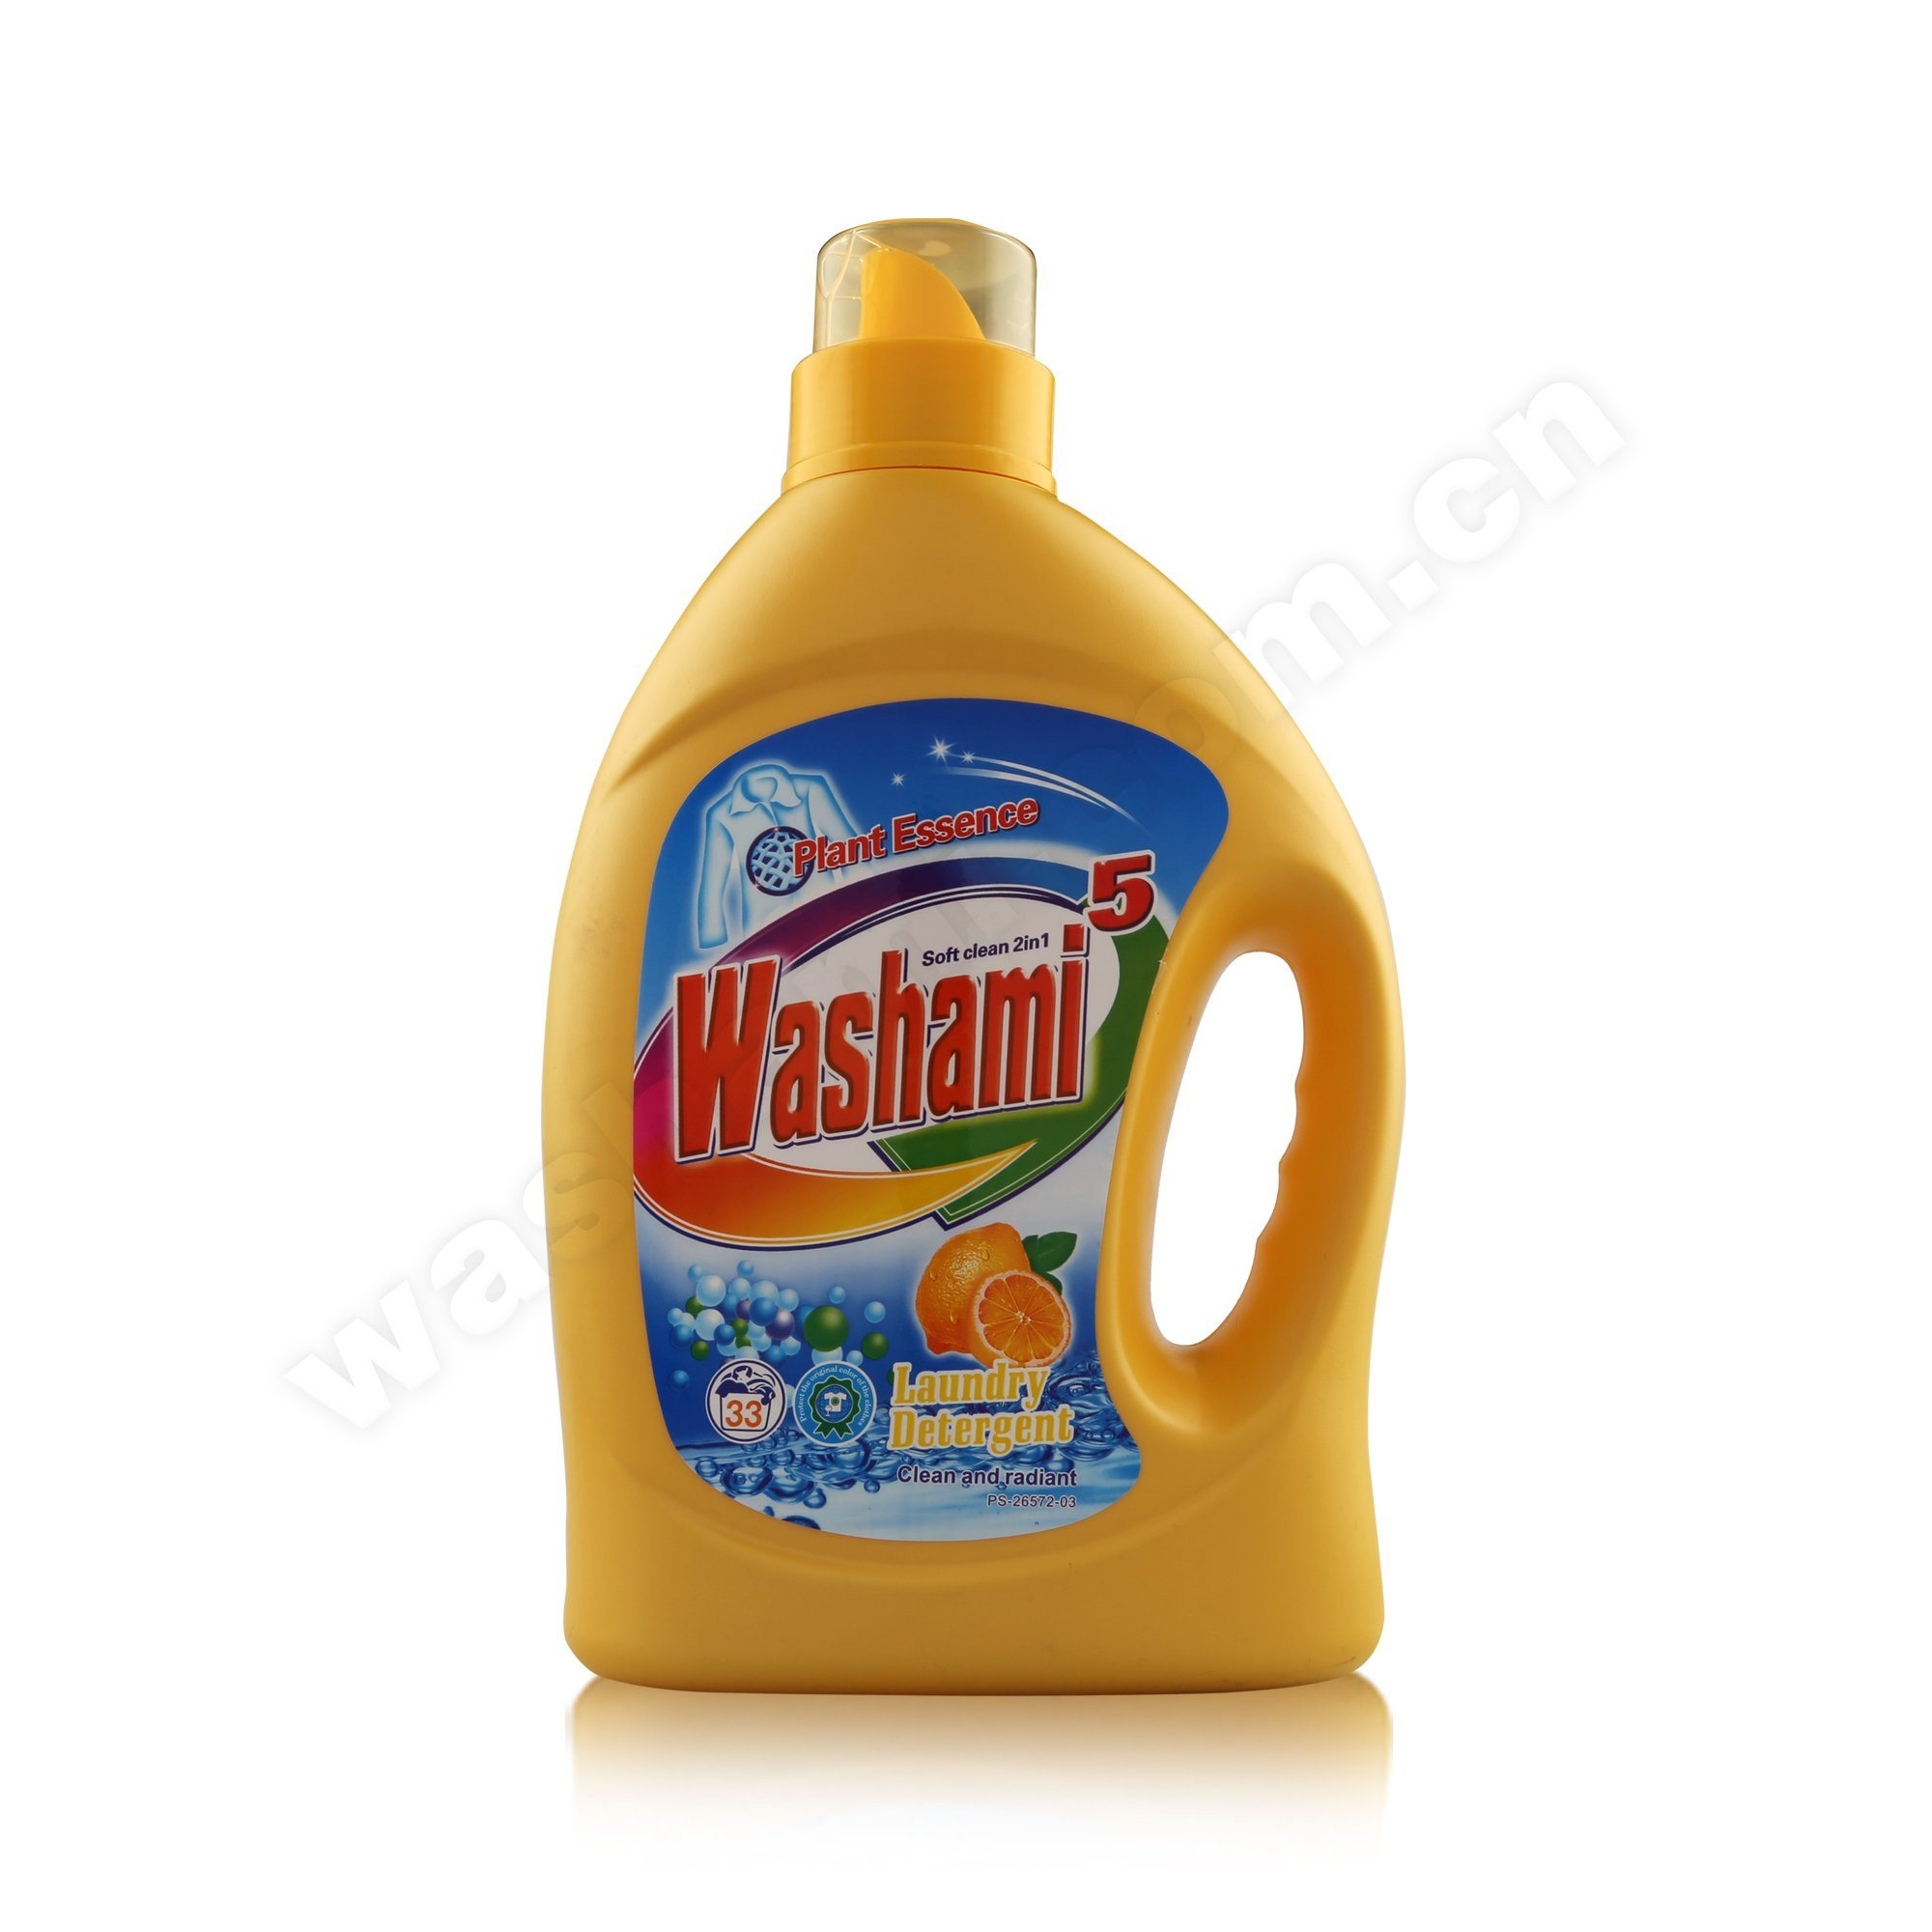 Washami Laundry Detergent Lasting Fragrant 2in1